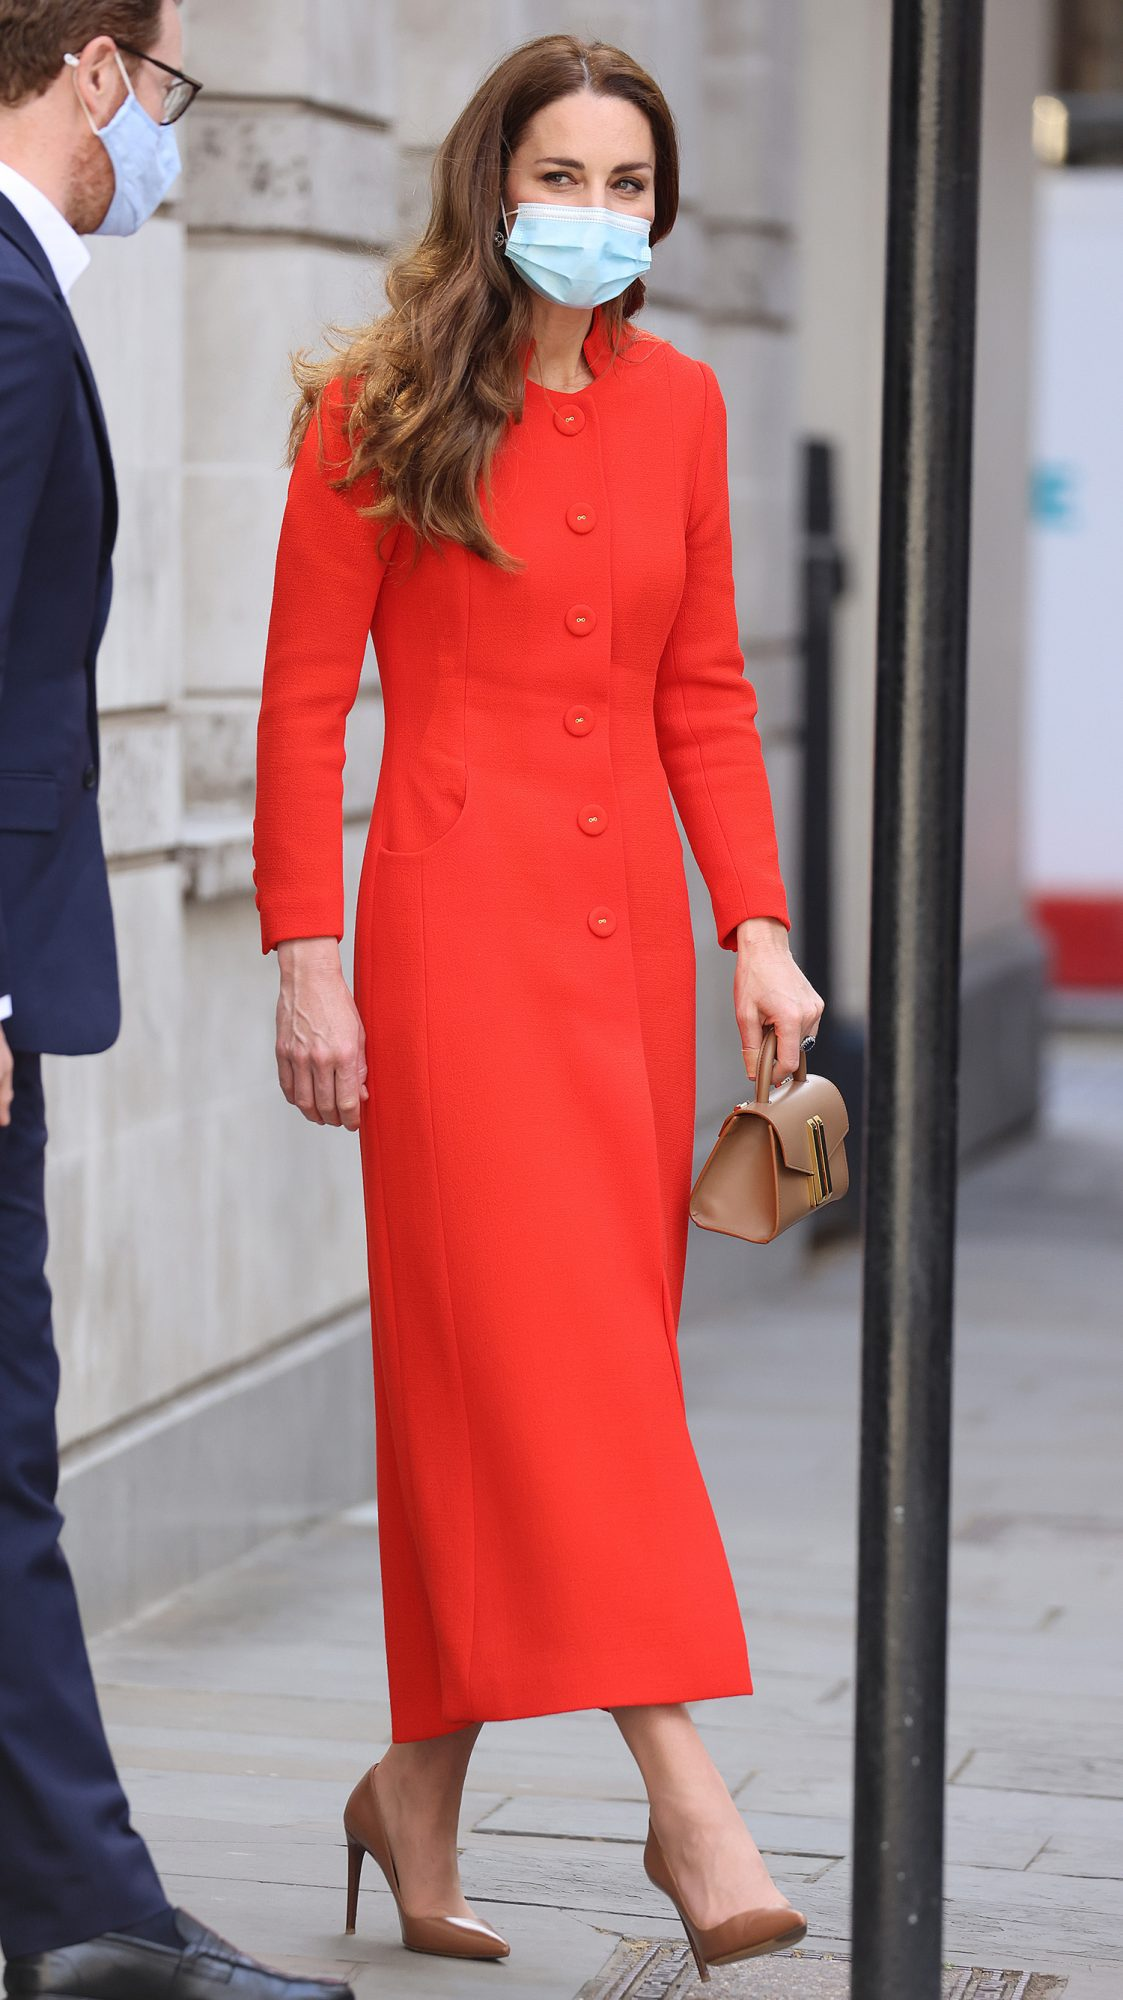 Vea la nota secreta que dejó Kate Middleton en Books Hidden Around London